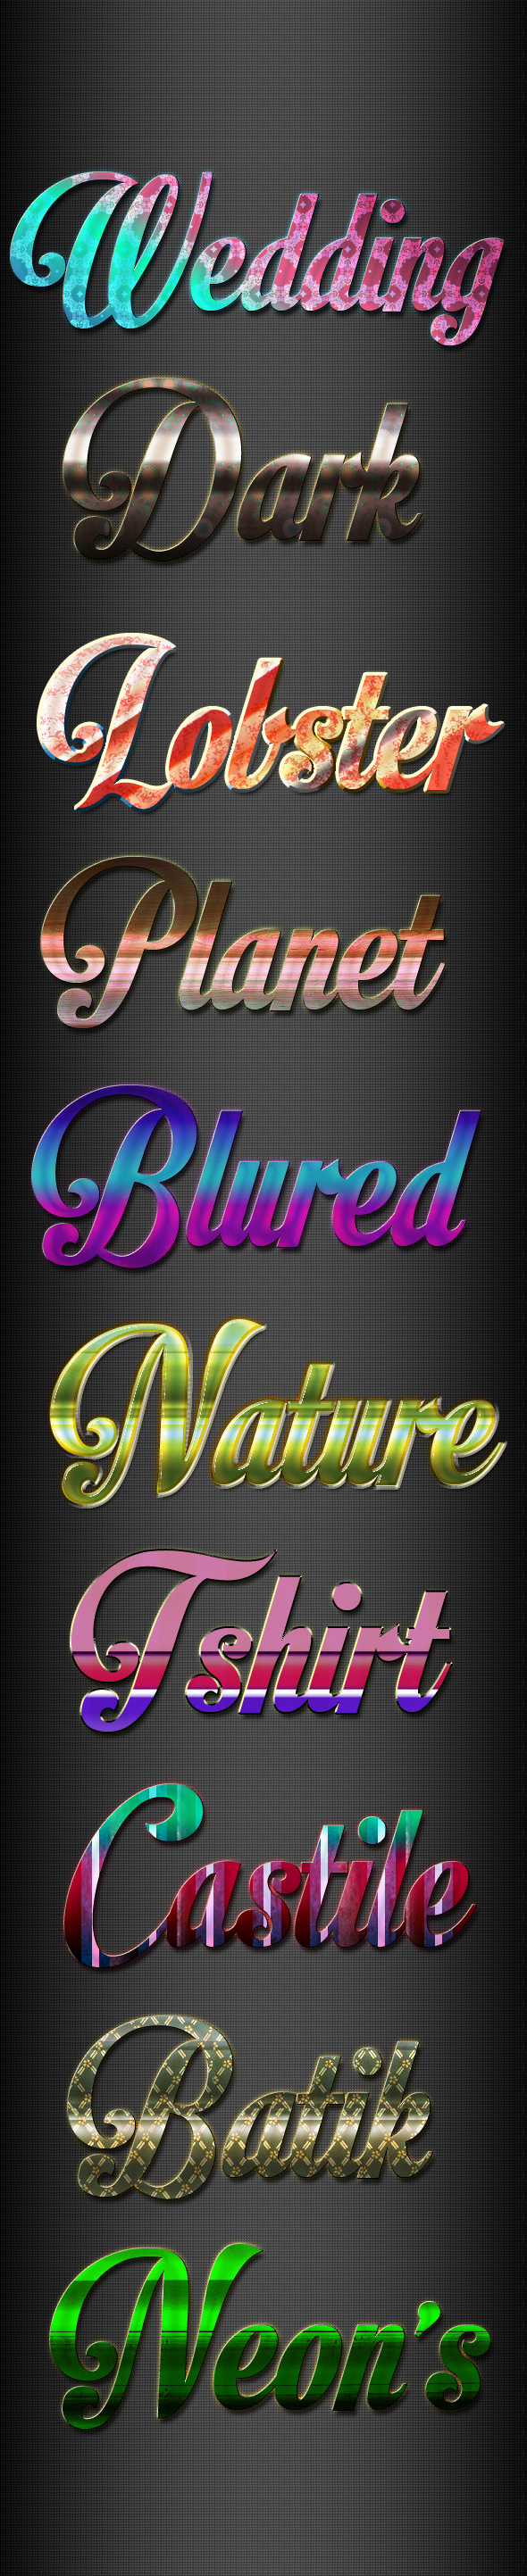 New Photoshop Text Styles vol 11 - Text Effects Styles